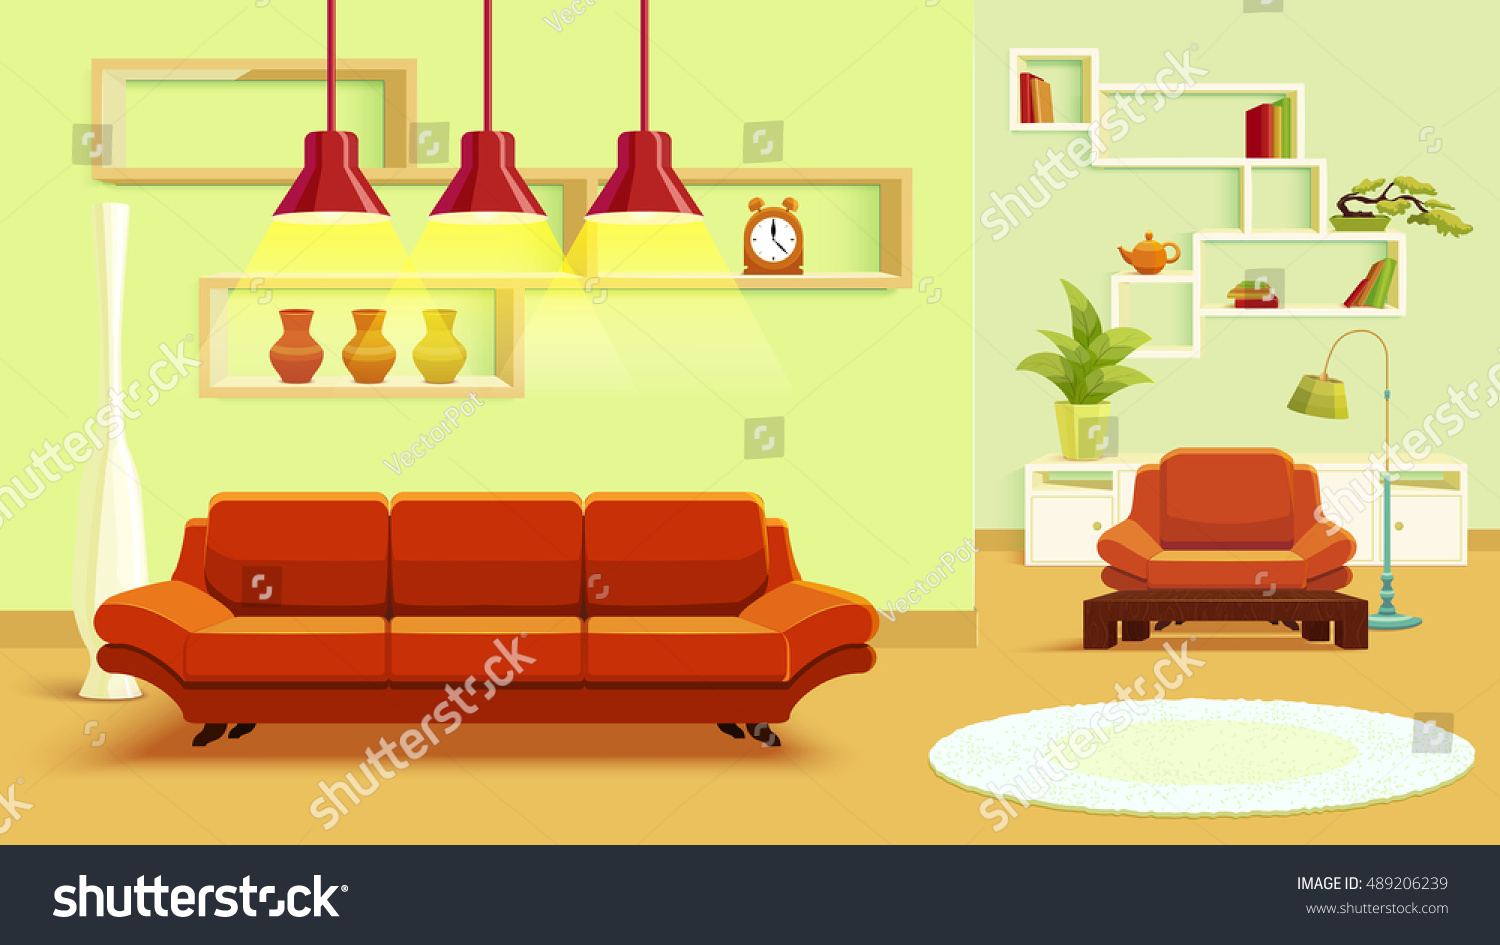 Living Room Interior Design In Beige Green Color With Red Soft Furniture And Light Carpet Vector